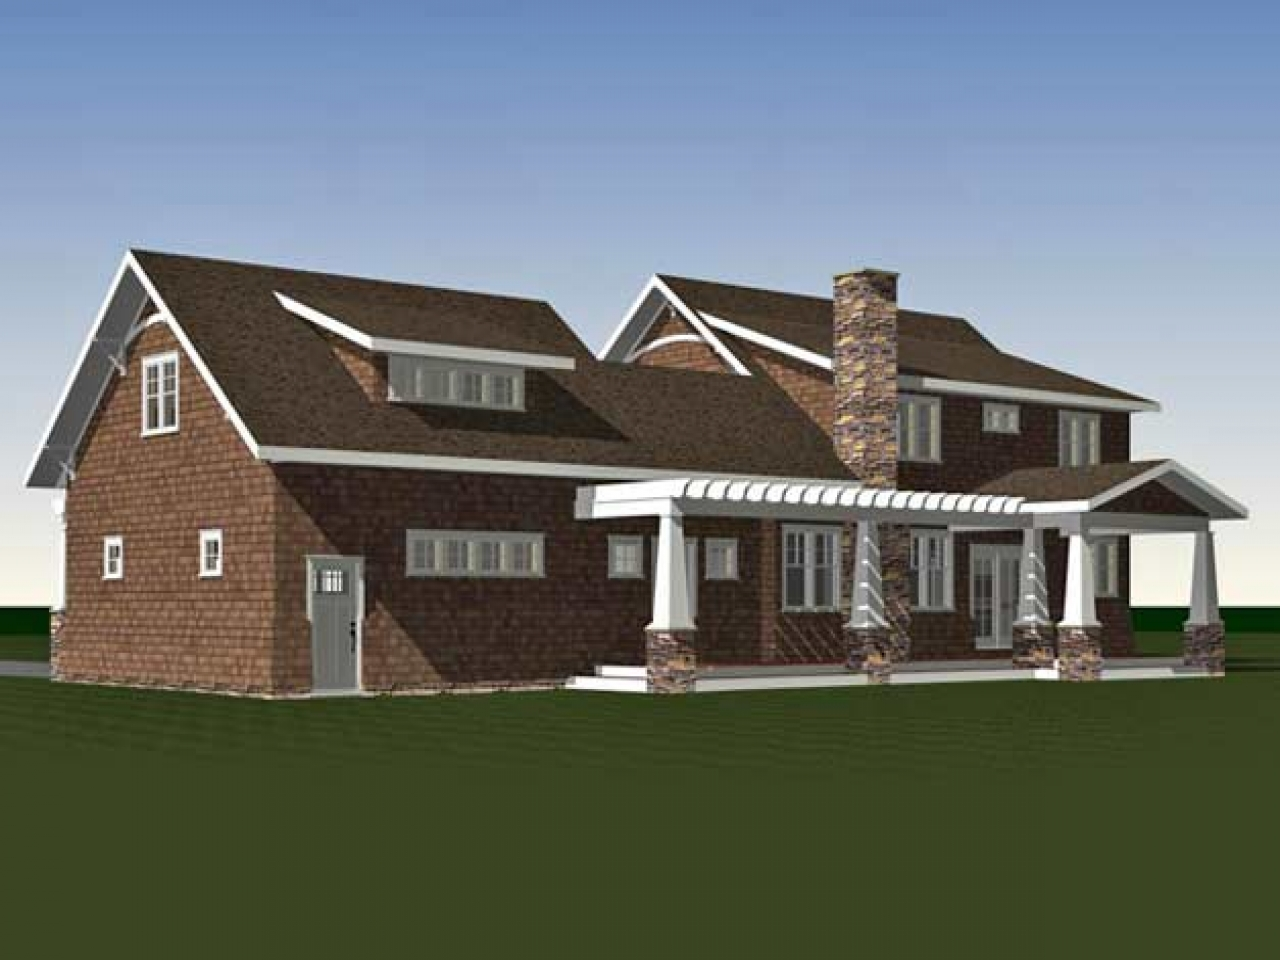 Architecture custom plan design icf the arts and crafts for Bungalow architects